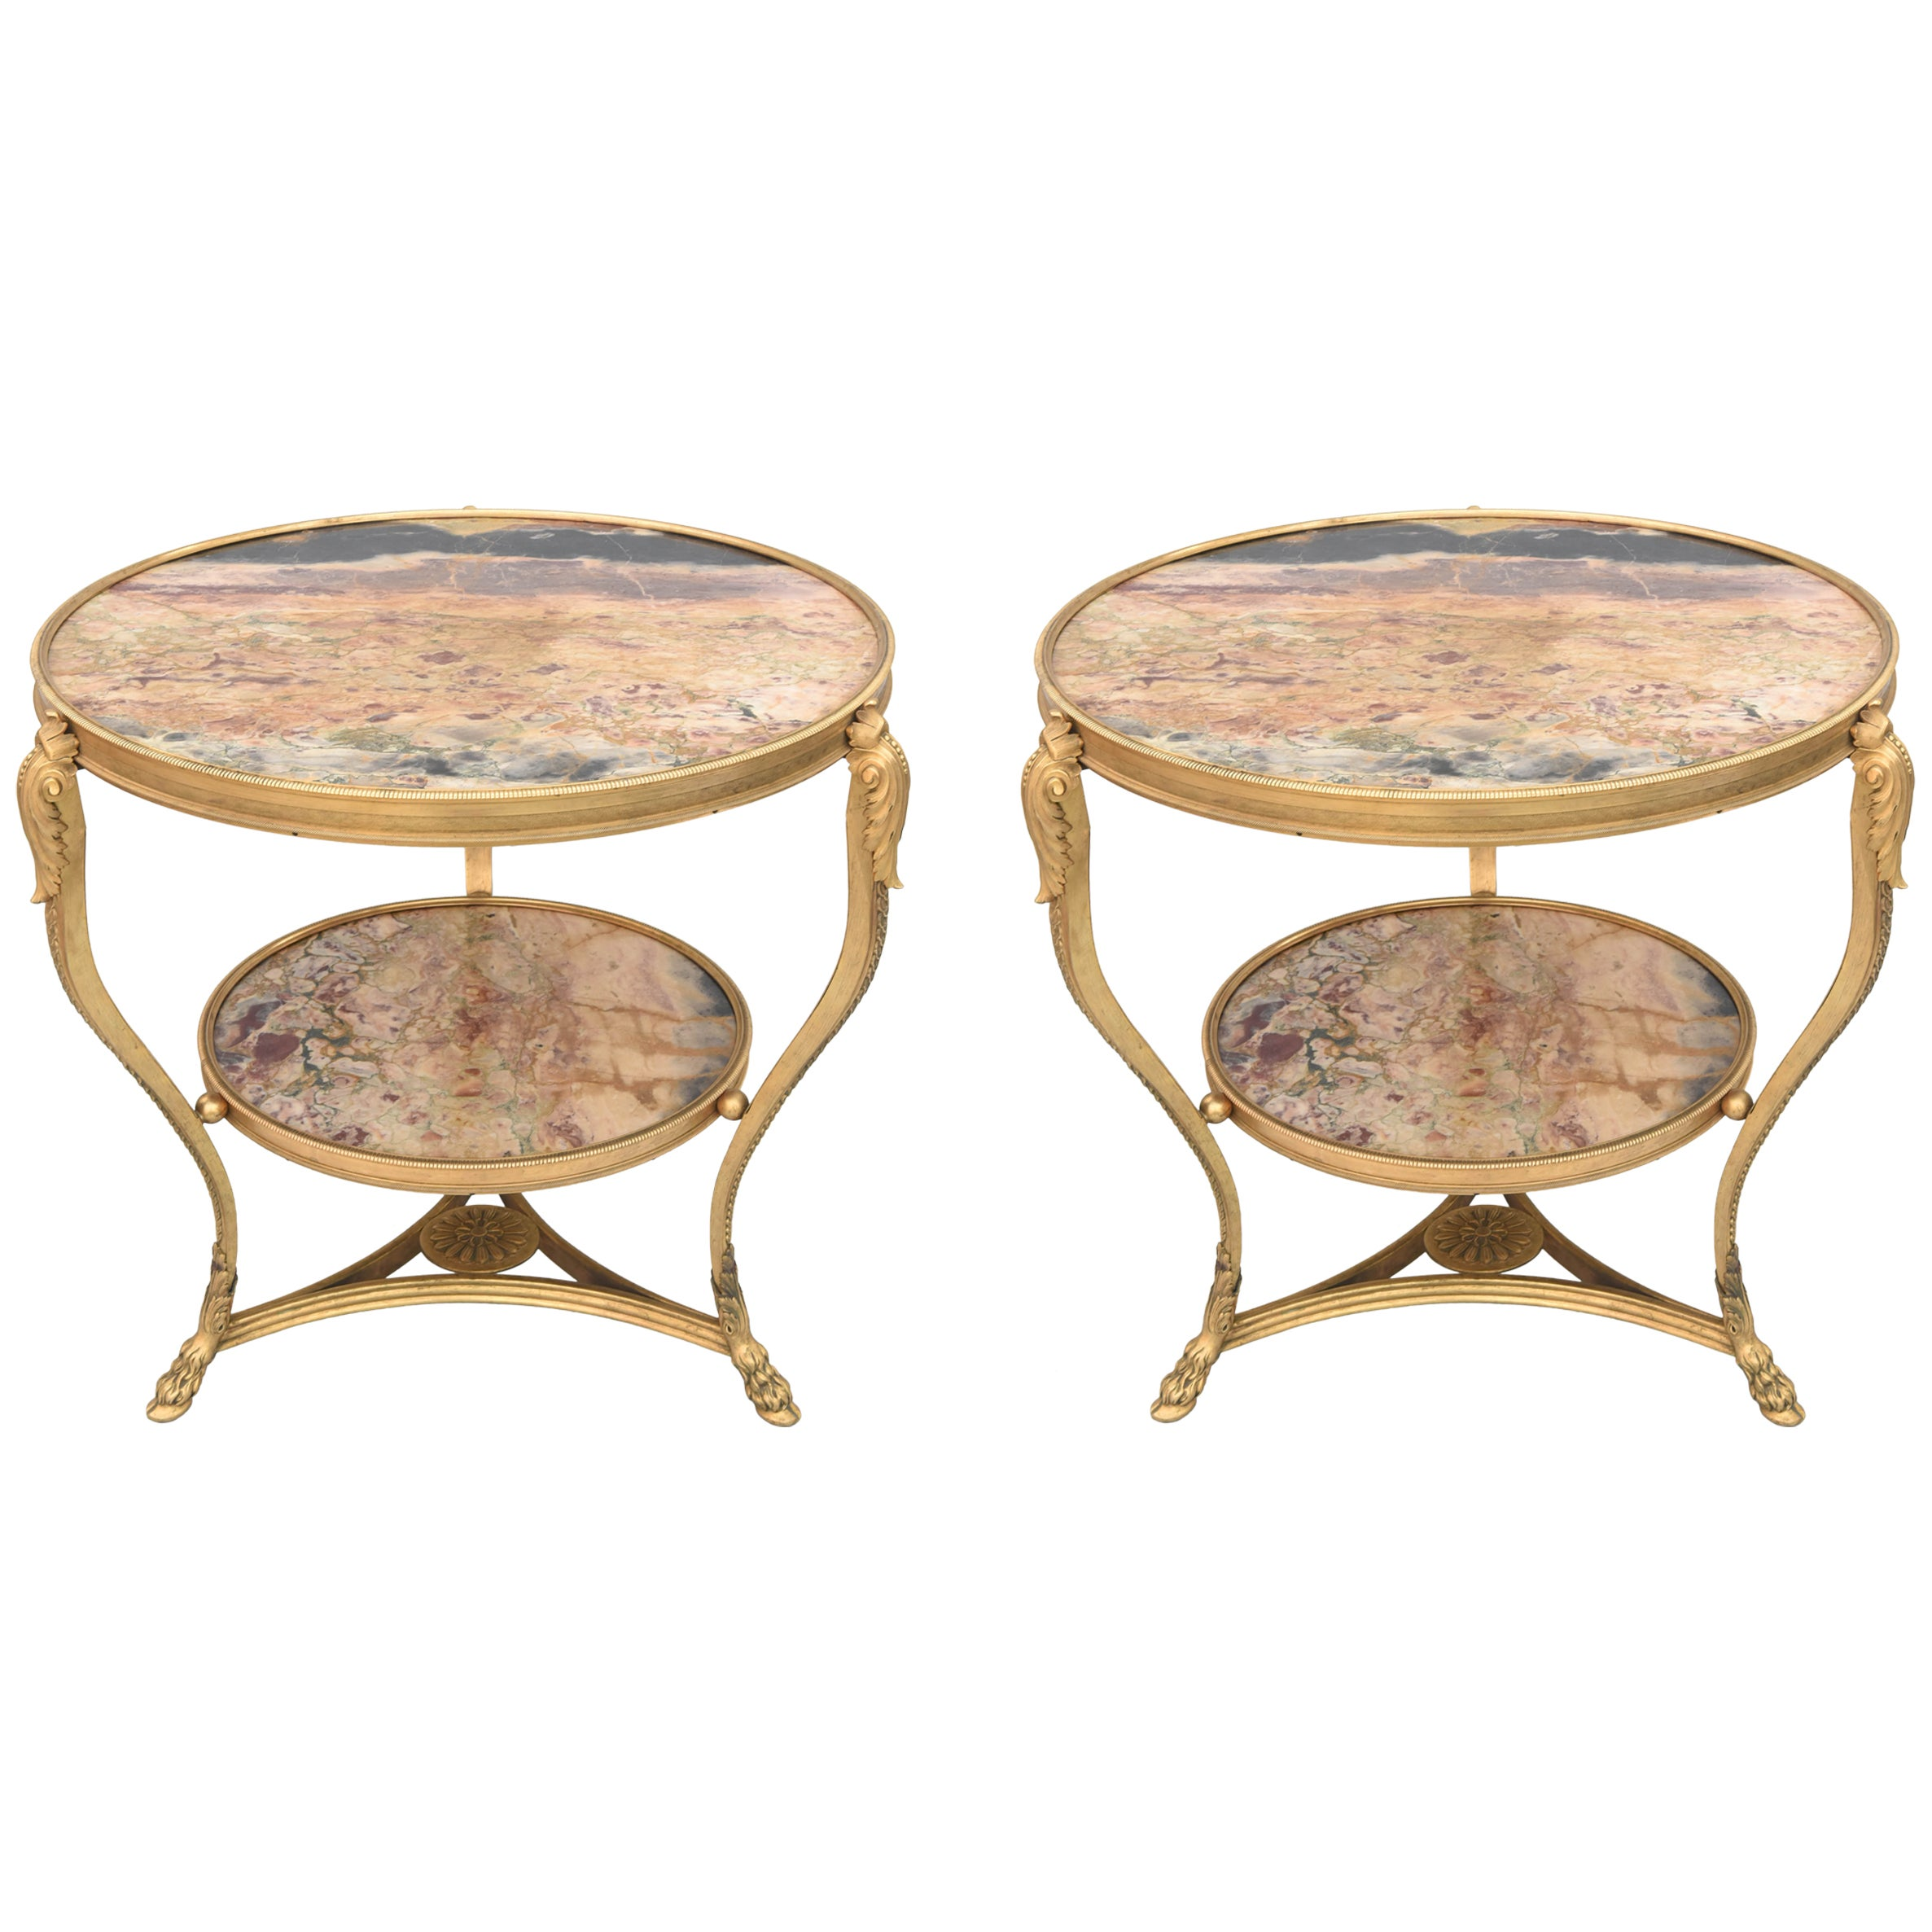 Exceptional Pair of 19th Century French Bronze and Marble Gueridons